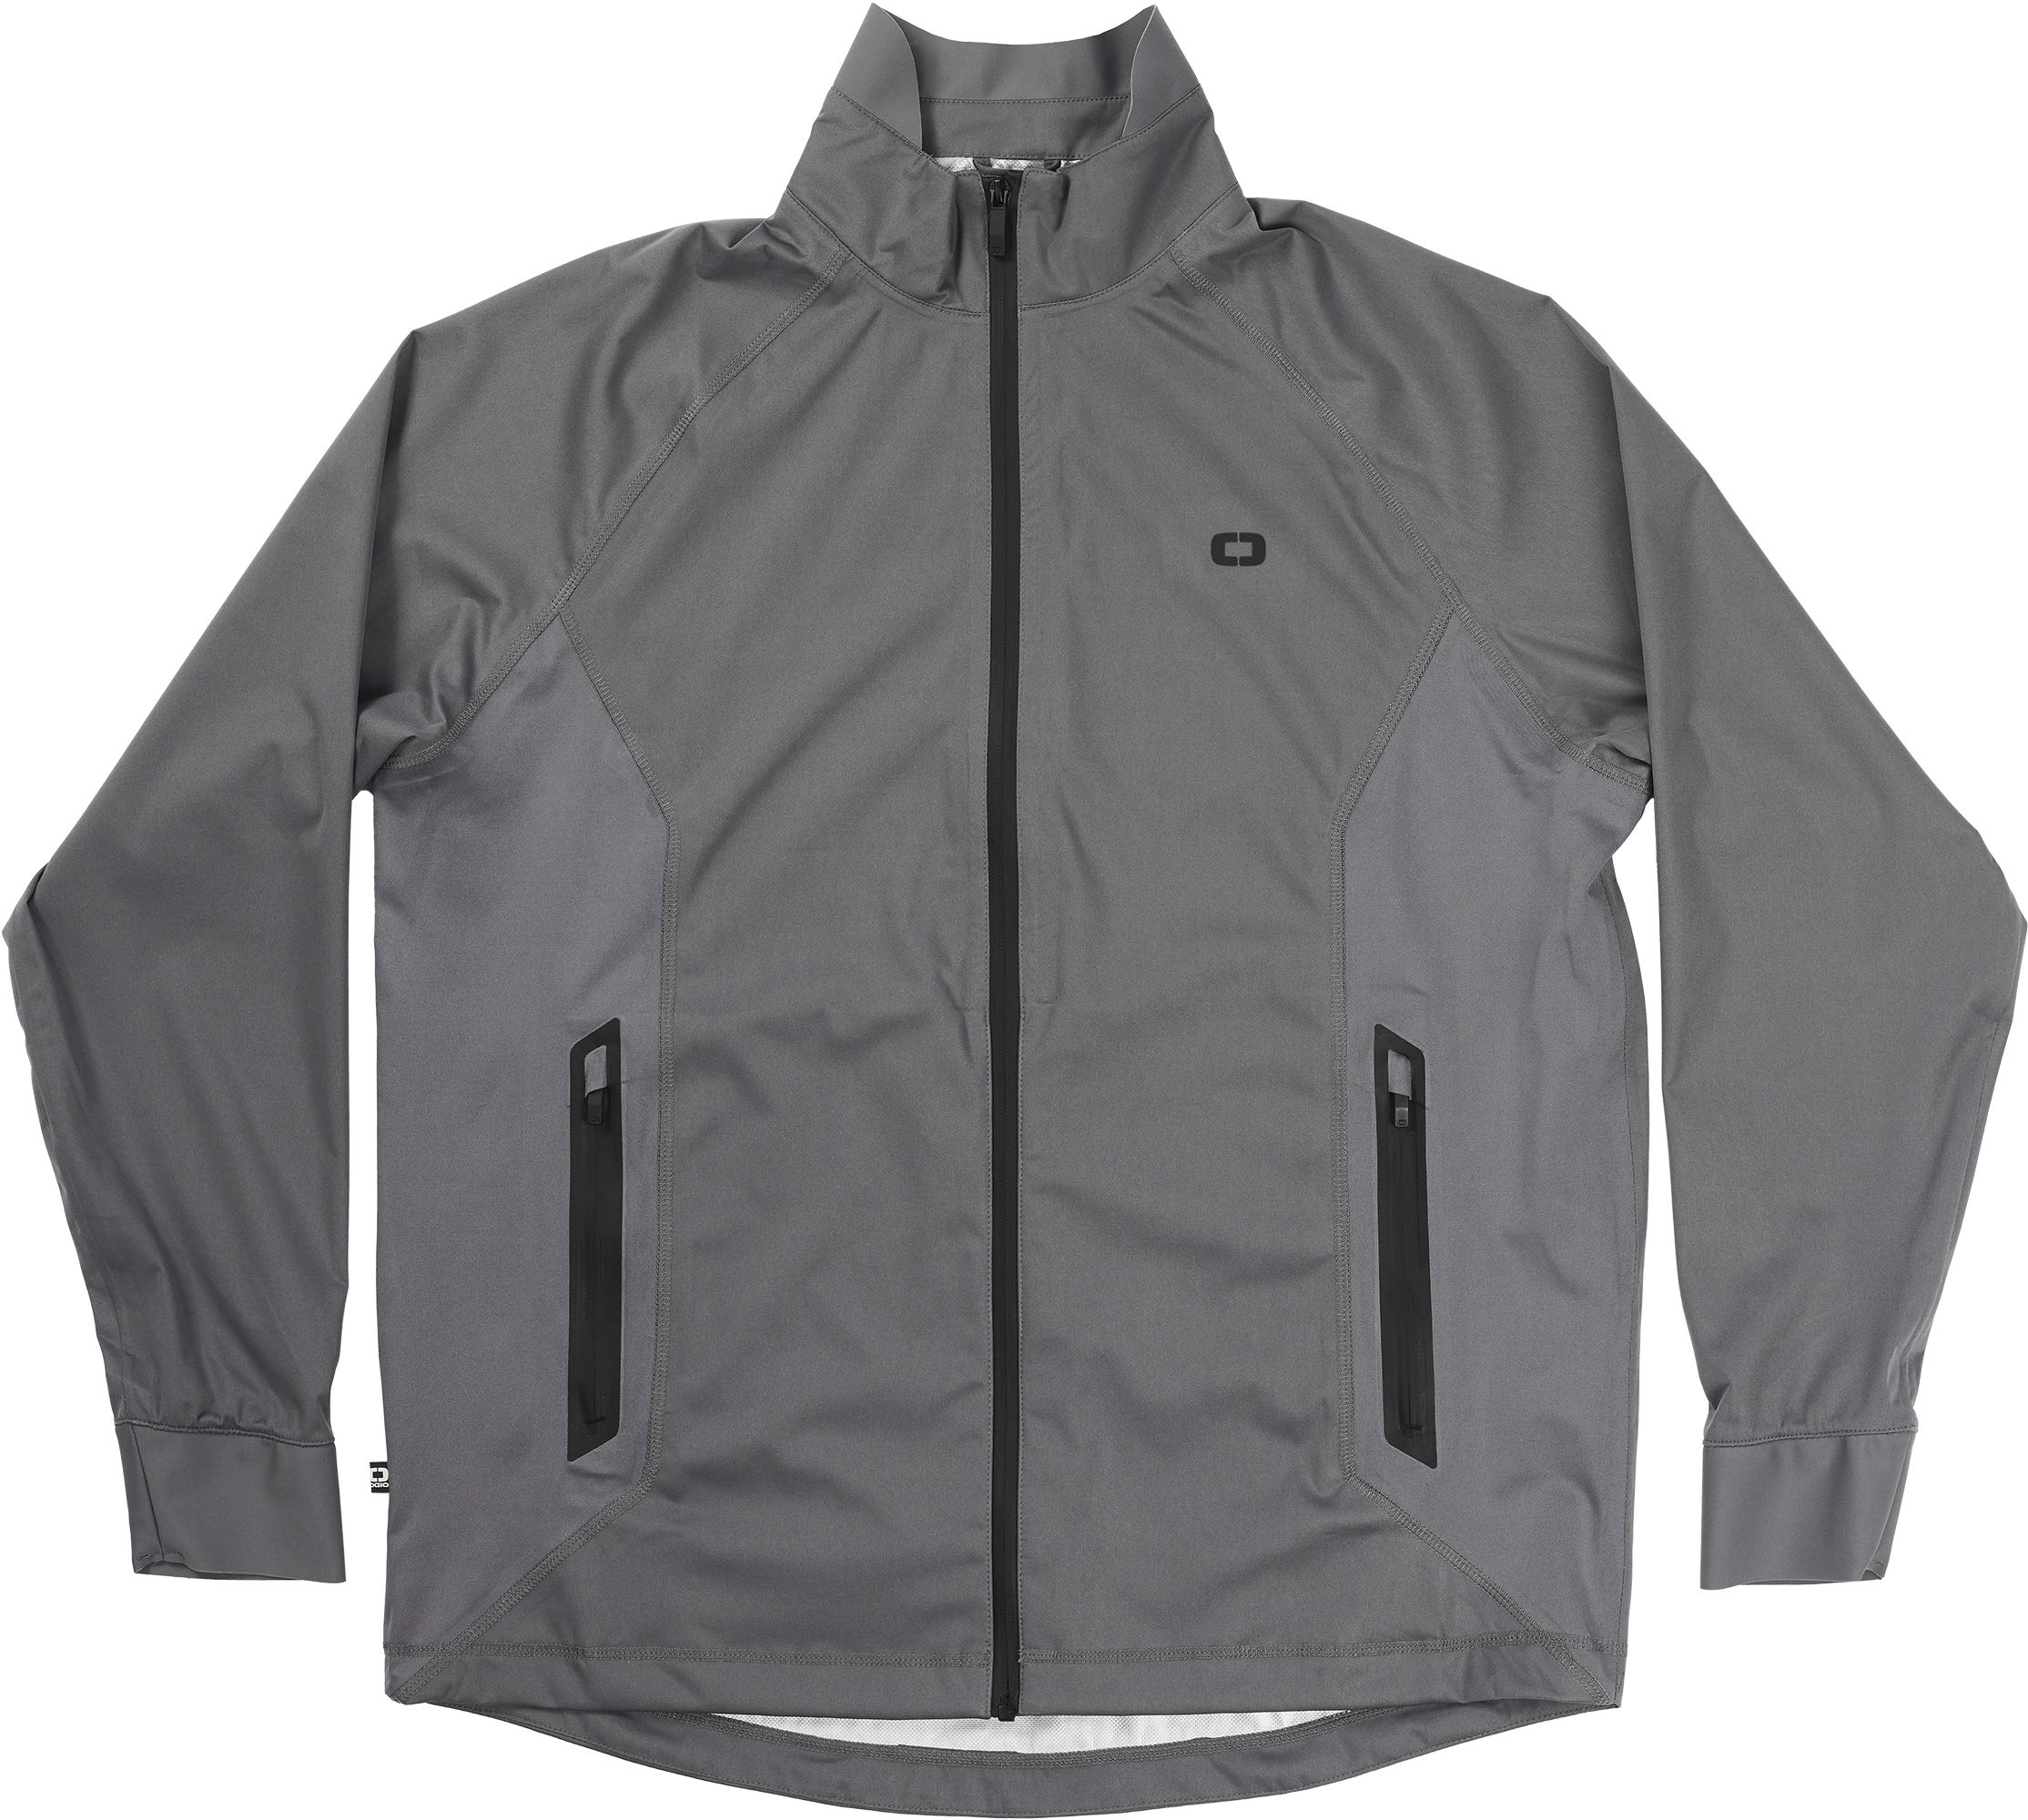 OGIO All Elements Rain Jacket, Charcoal, Small by OGIO